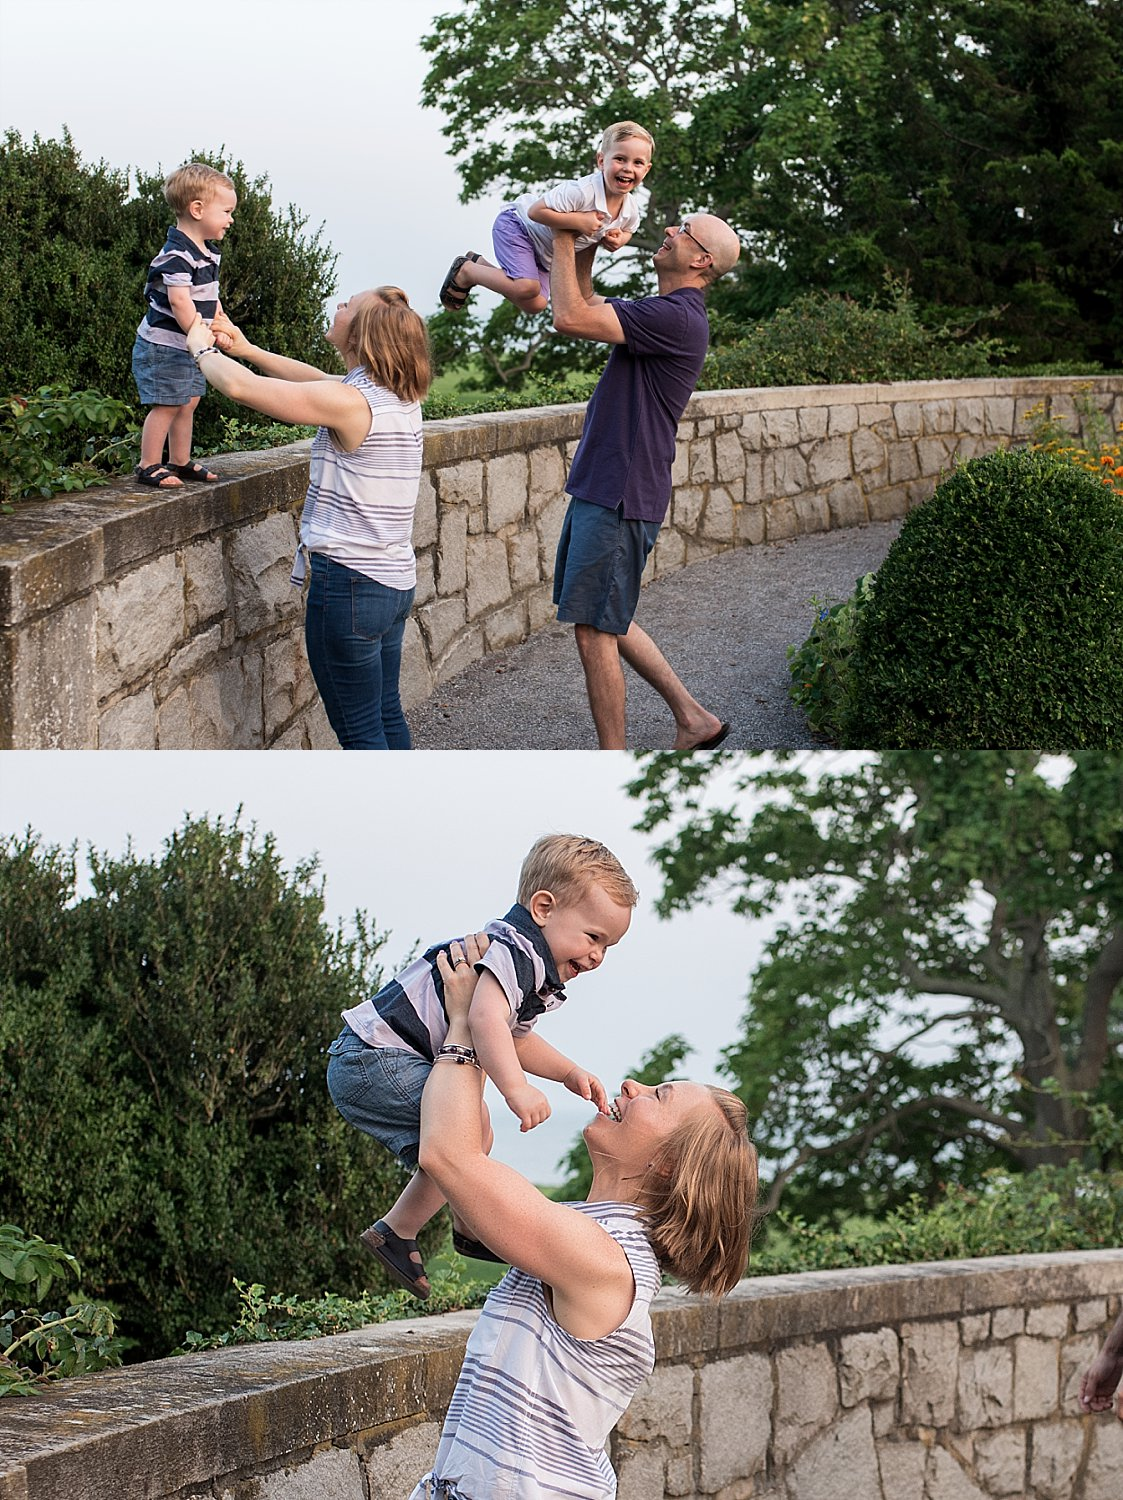 Children jumping off stone wall into parents arms at CT family photographer